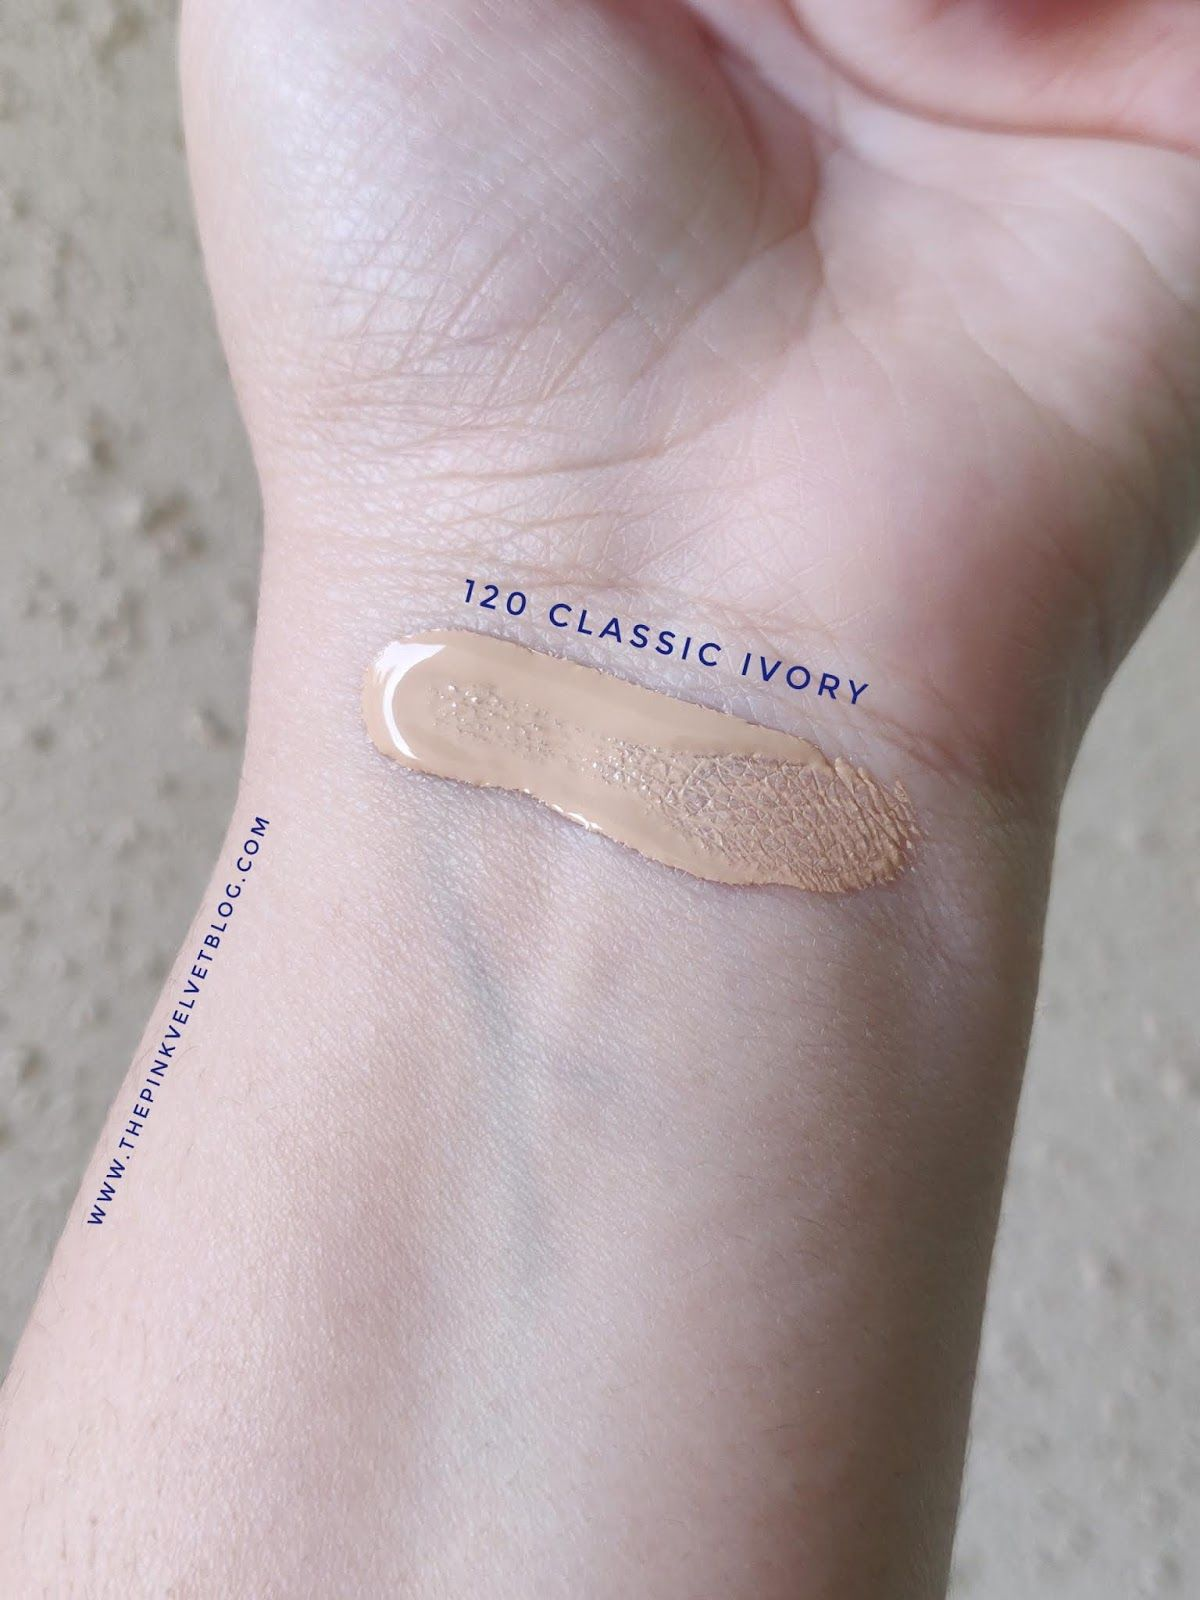 Maybelline fit me foundation 120 classic ivory review